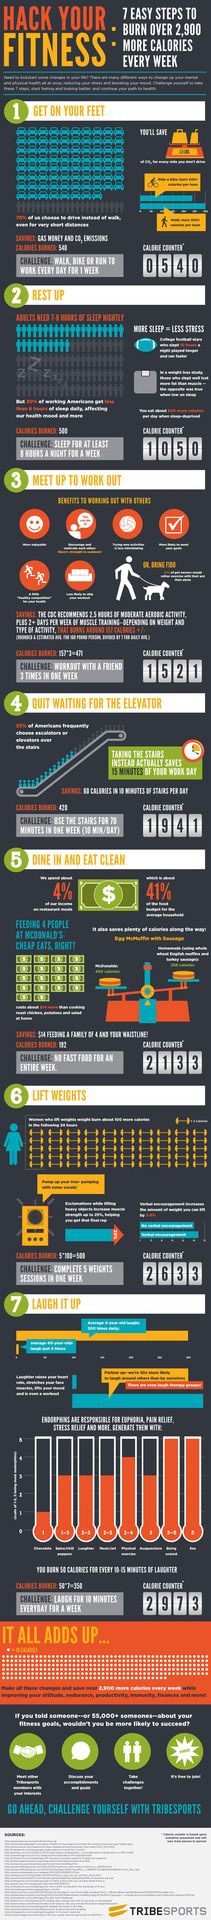 Hack Your Fitness Infographic